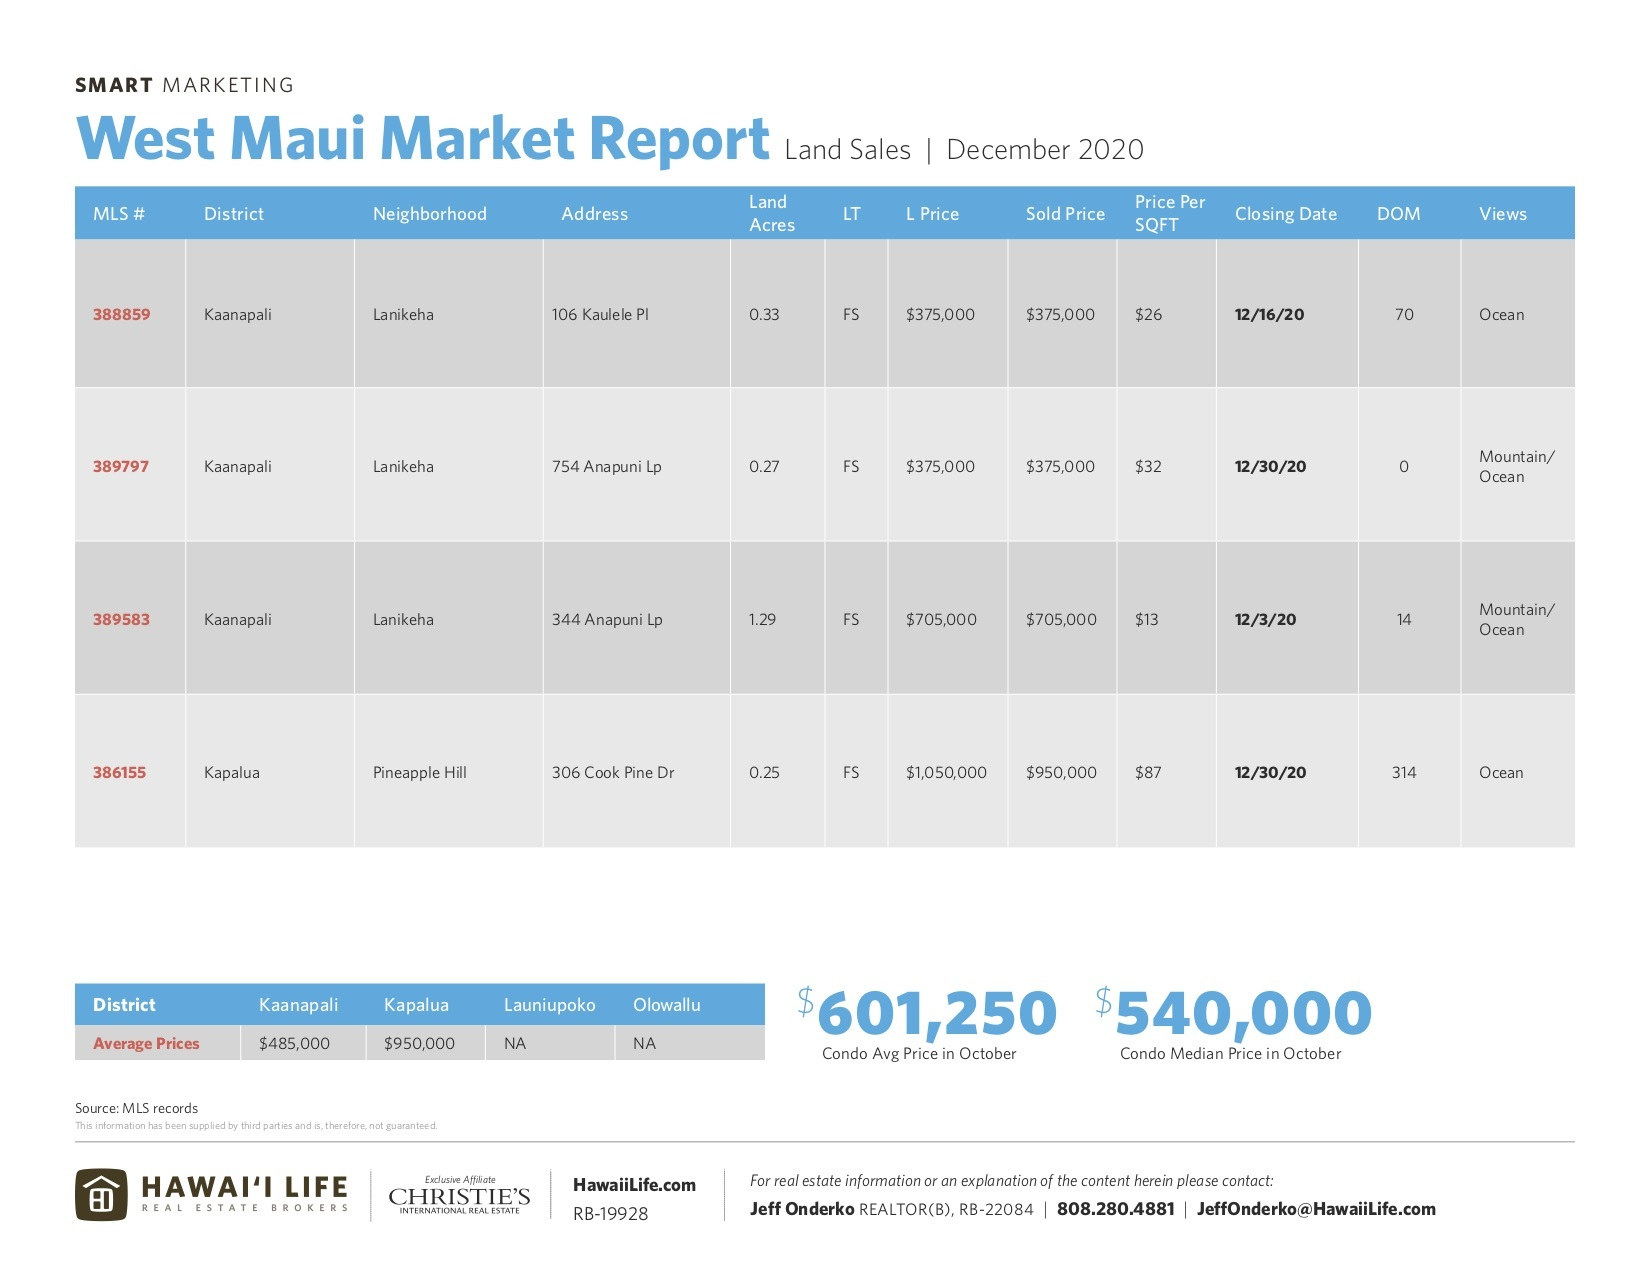 land sales in west maui december 2020